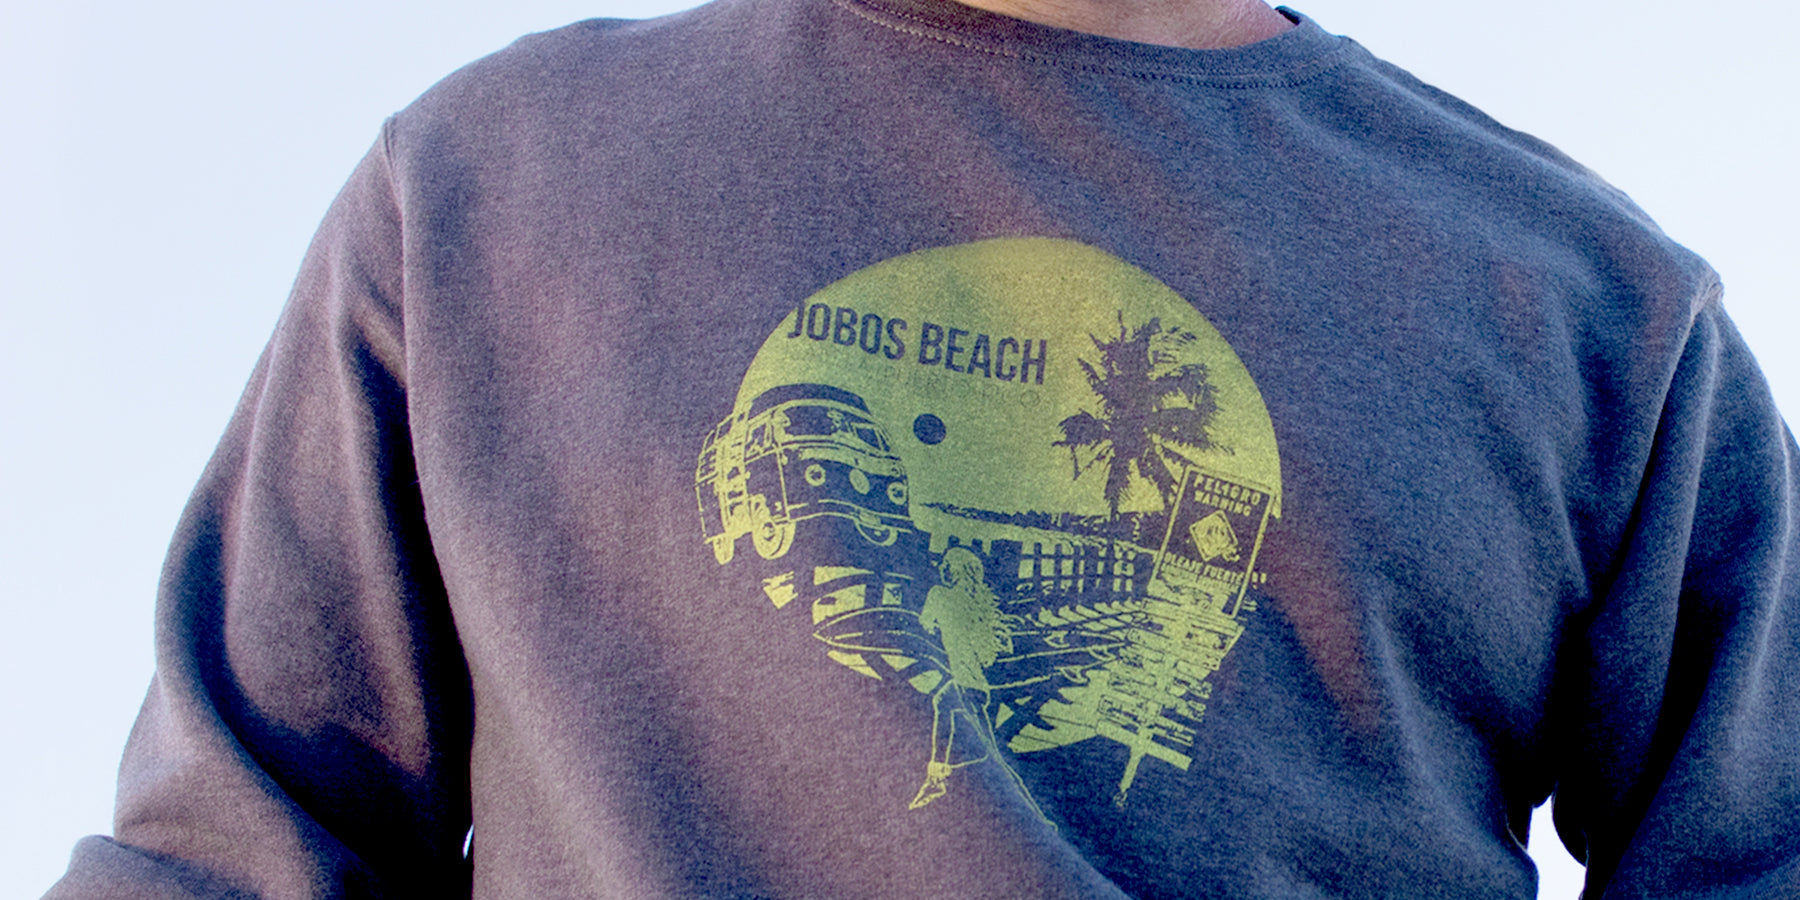 Jobos Beach T-shirt